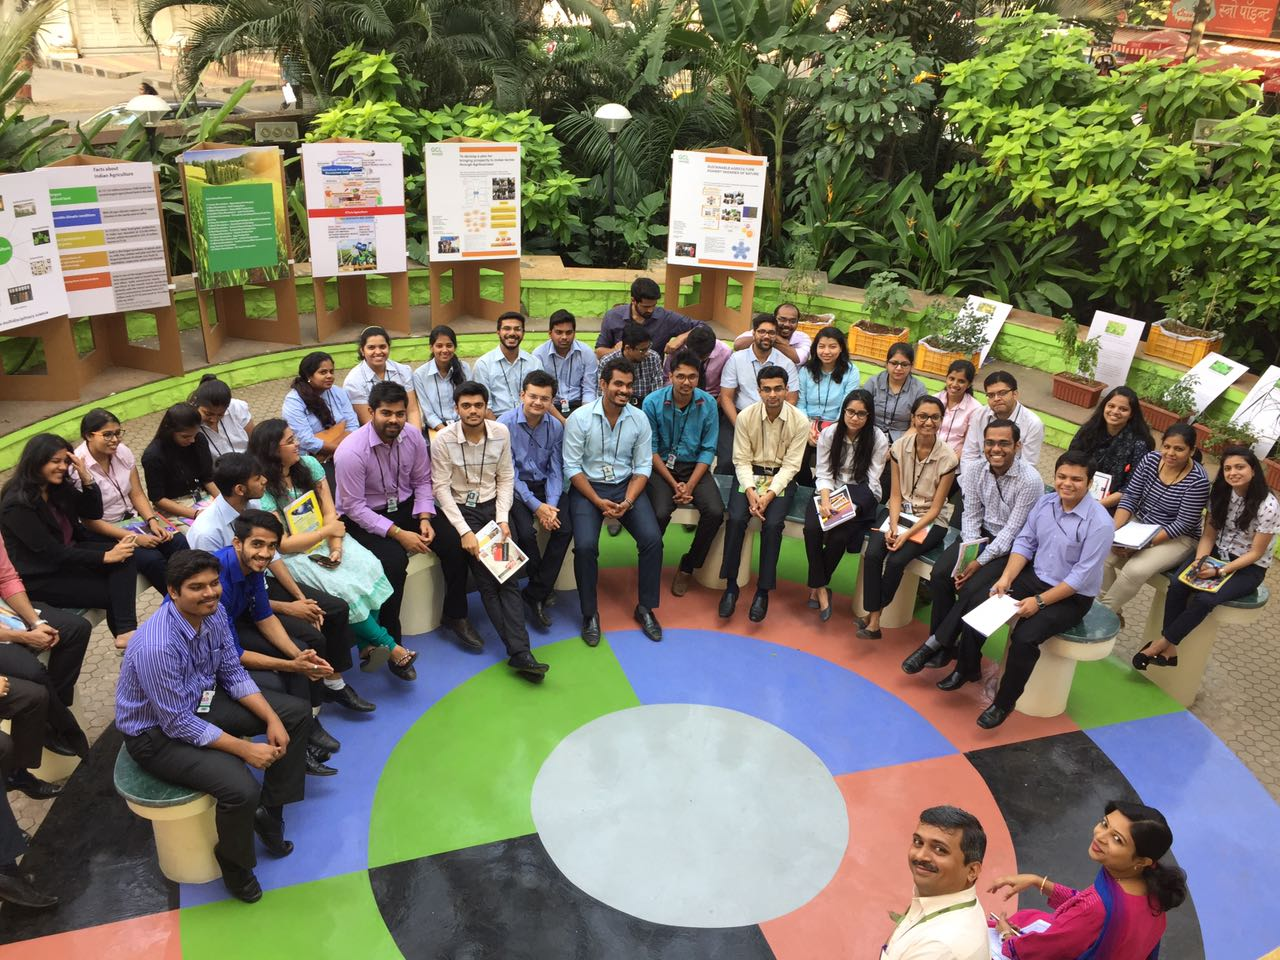 WeSchool sets up Agri-lab in the midst of Urban Mumbai